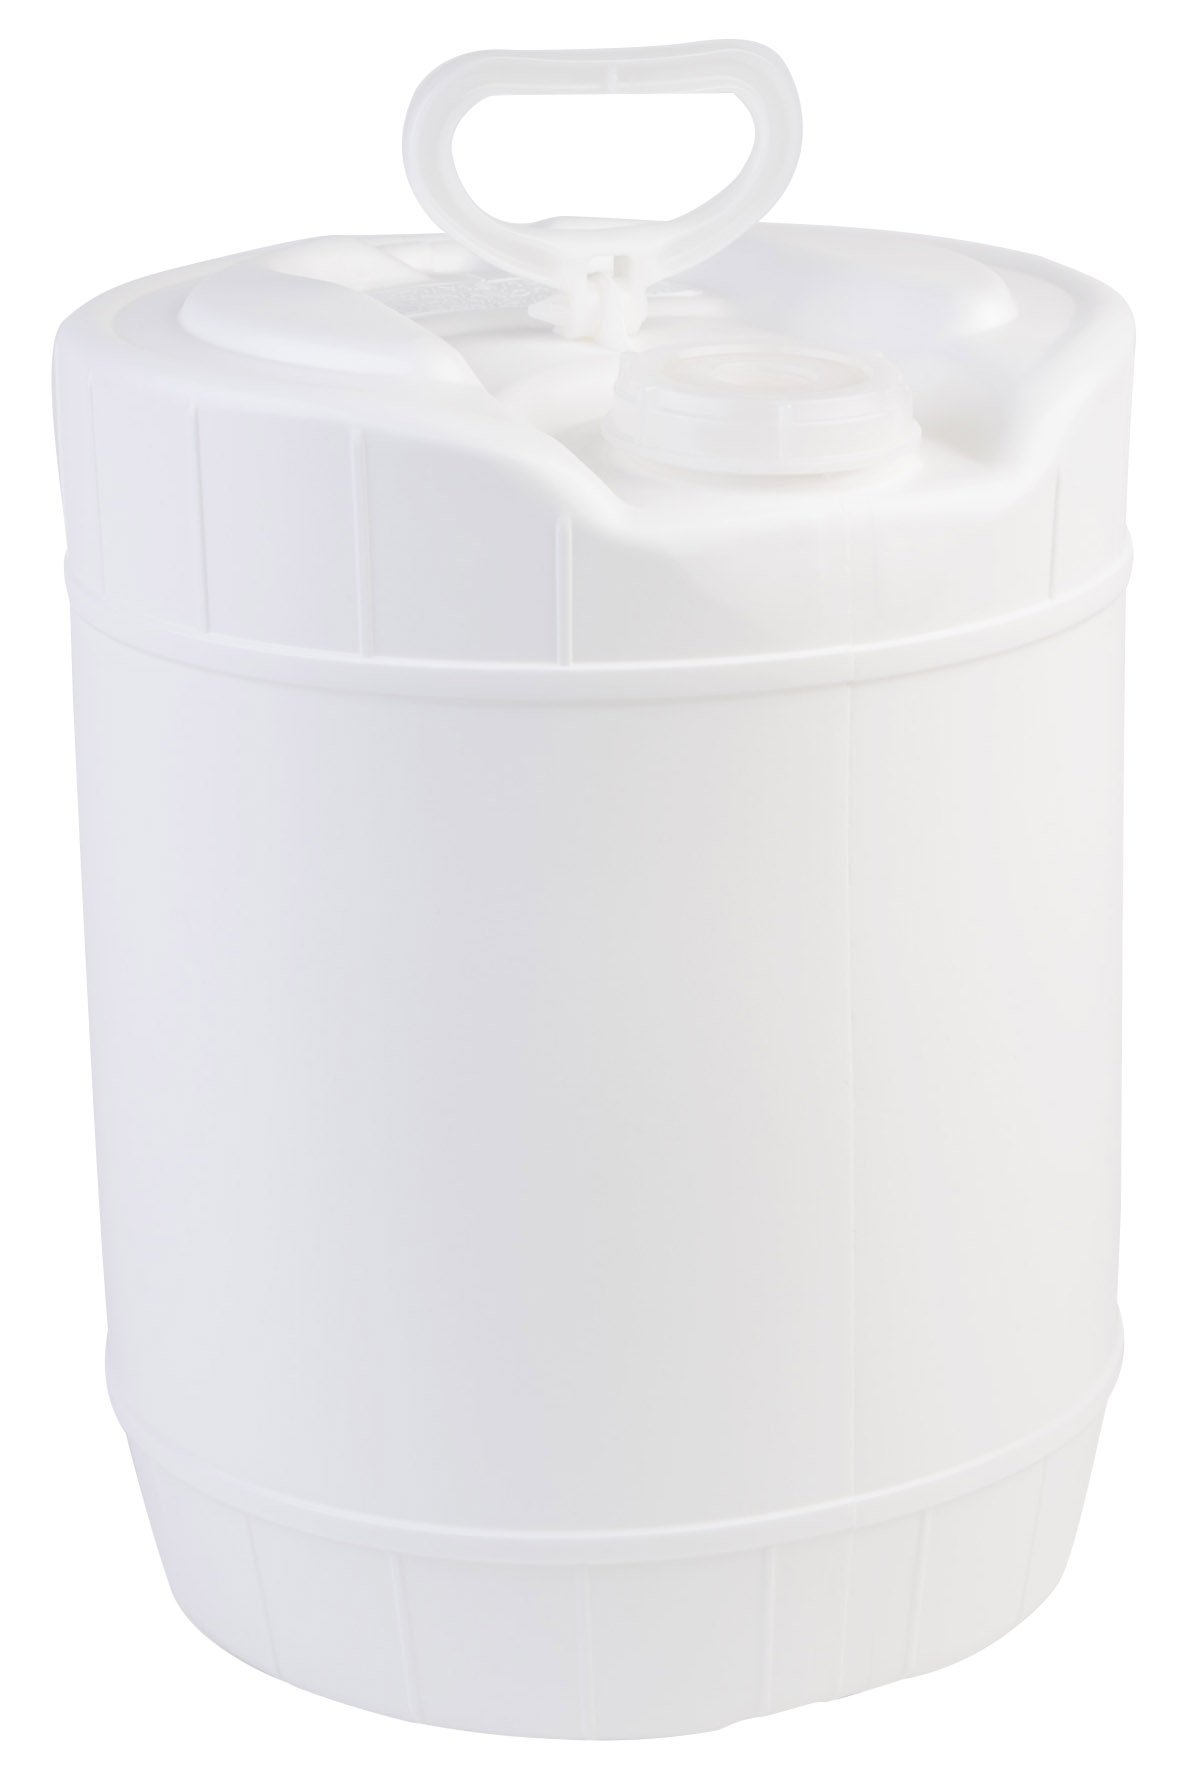 Hudson Exchange 5 Gallon Winpak Handled Container with Cap, HDPE, White